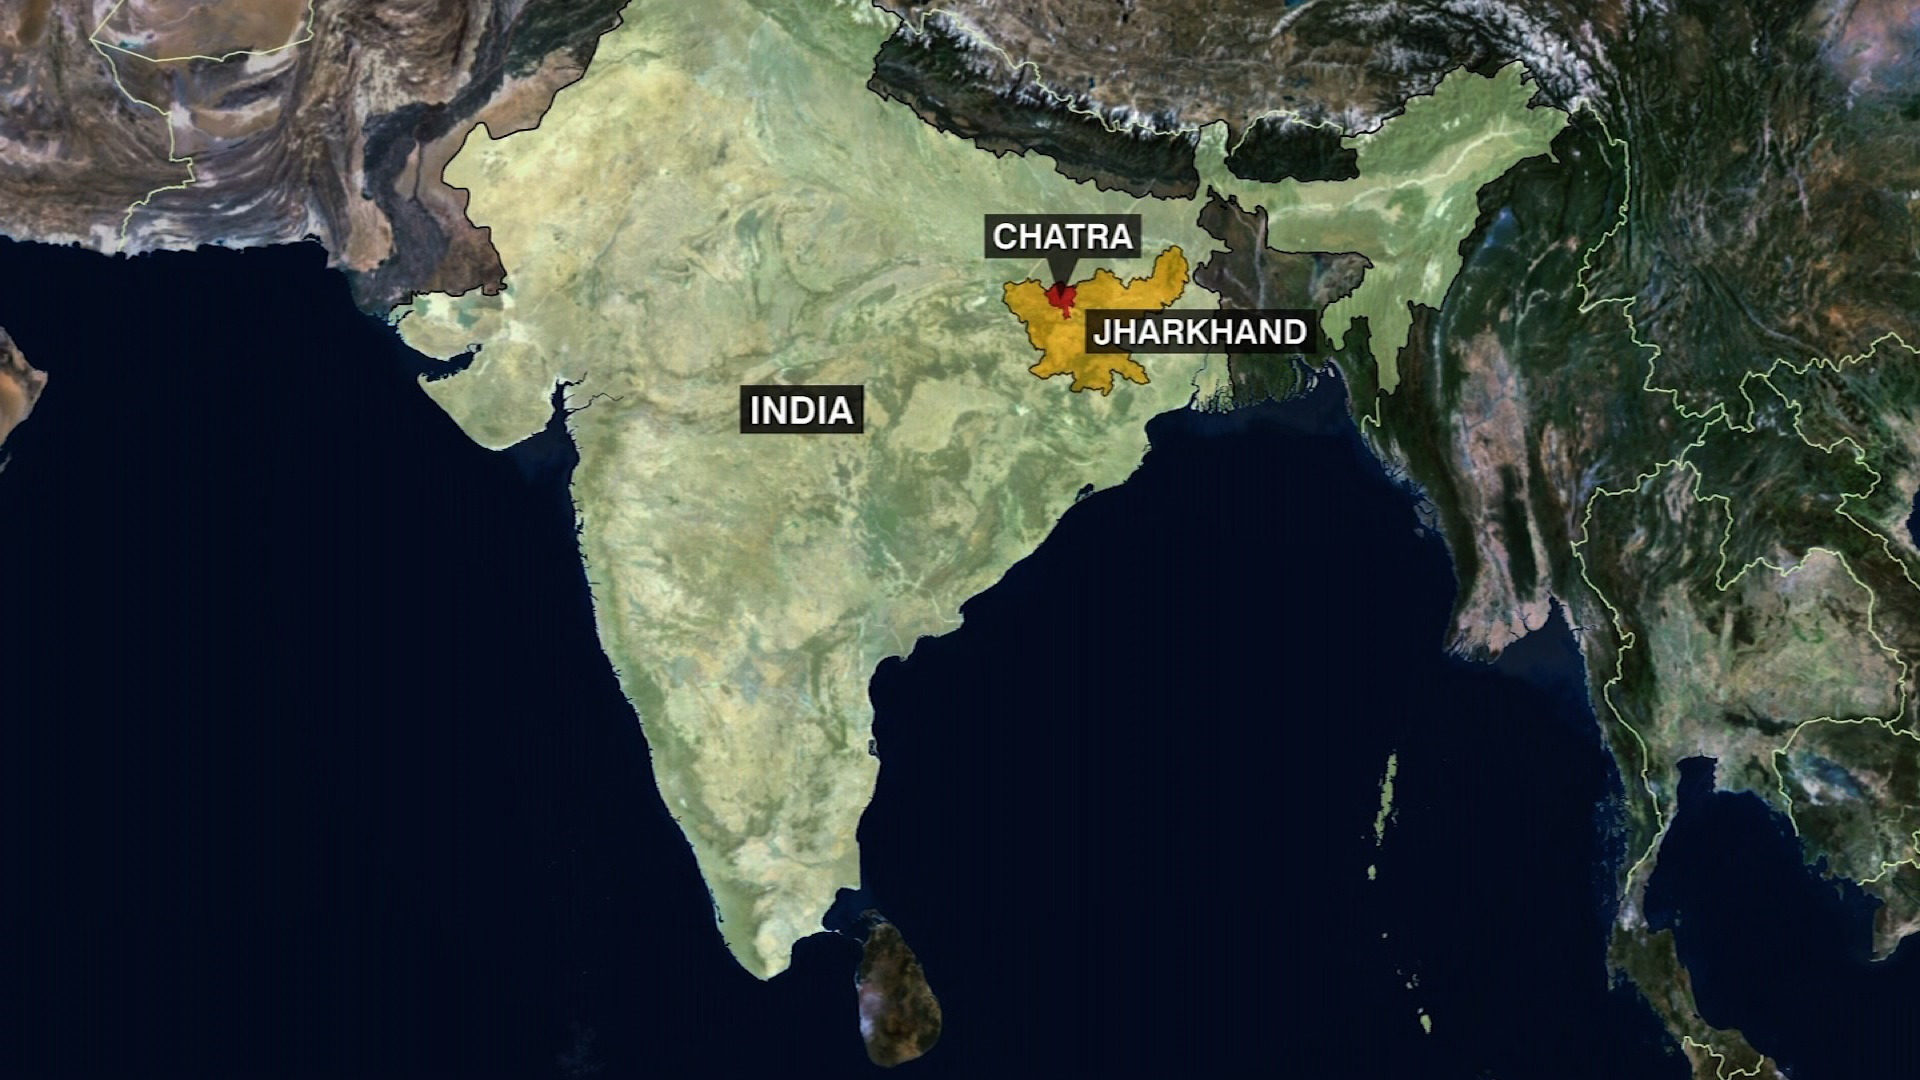 Third Indian allegedly raped, set on fire - CNN Video